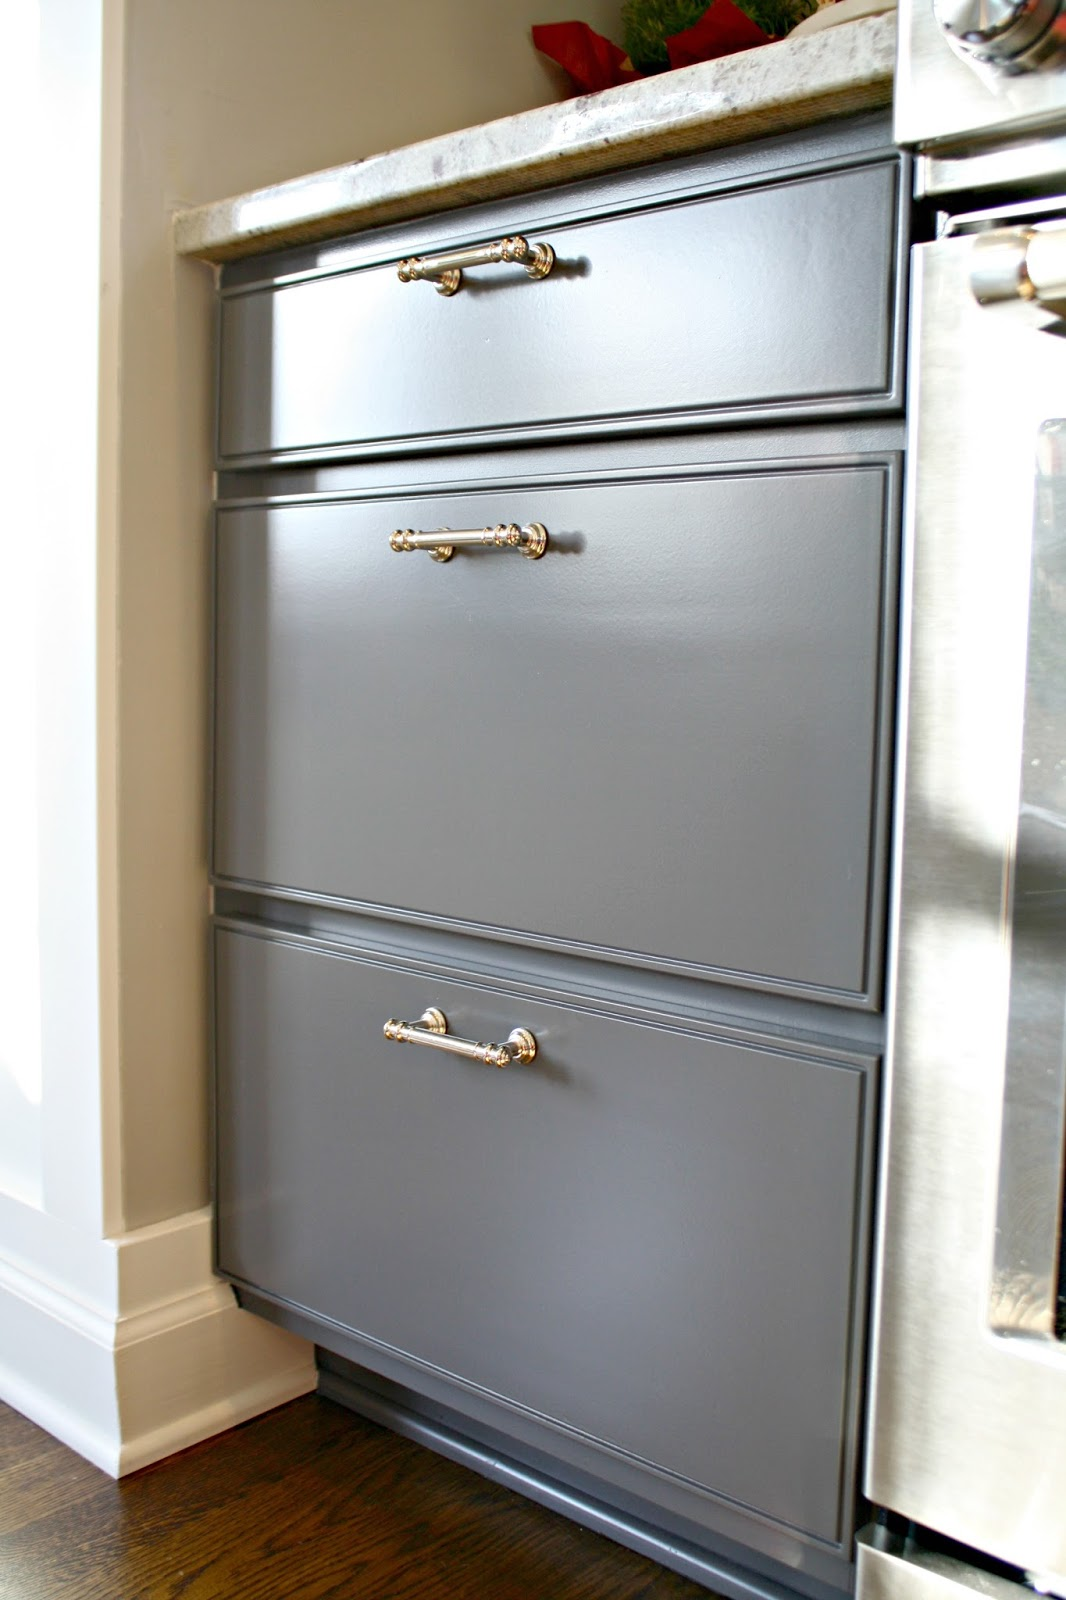 The Painted Cabinets A Month Later From Thrifty Decor Chick